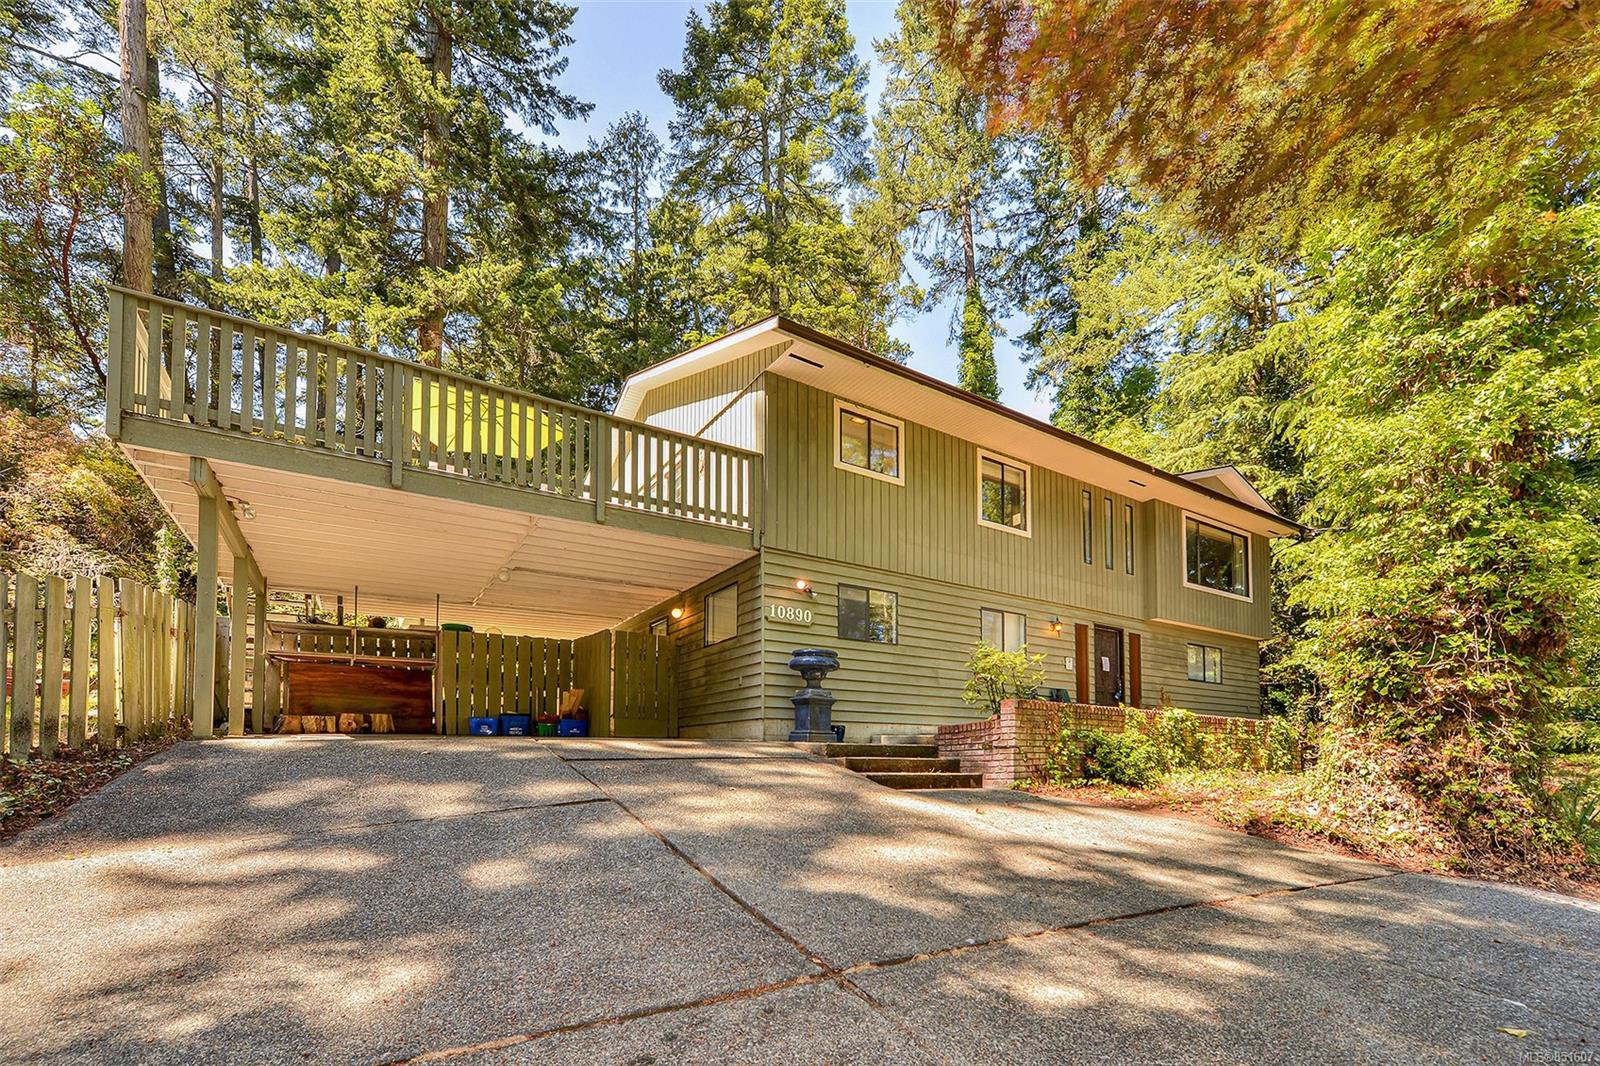 Main Photo: 10890 Fernie Wynd Rd in : NS Curteis Point House for sale (North Saanich)  : MLS®# 851607